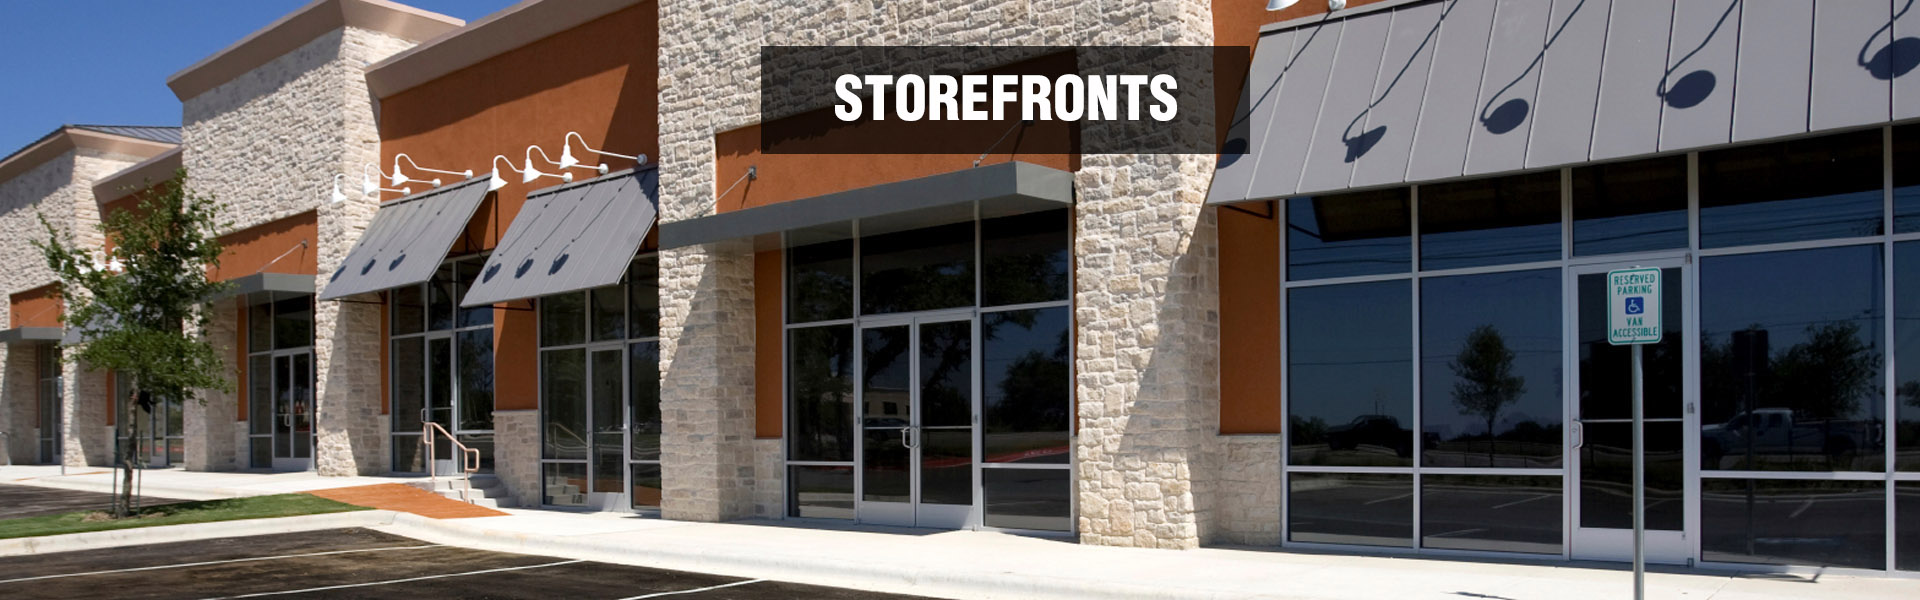 commercial-storefront-41